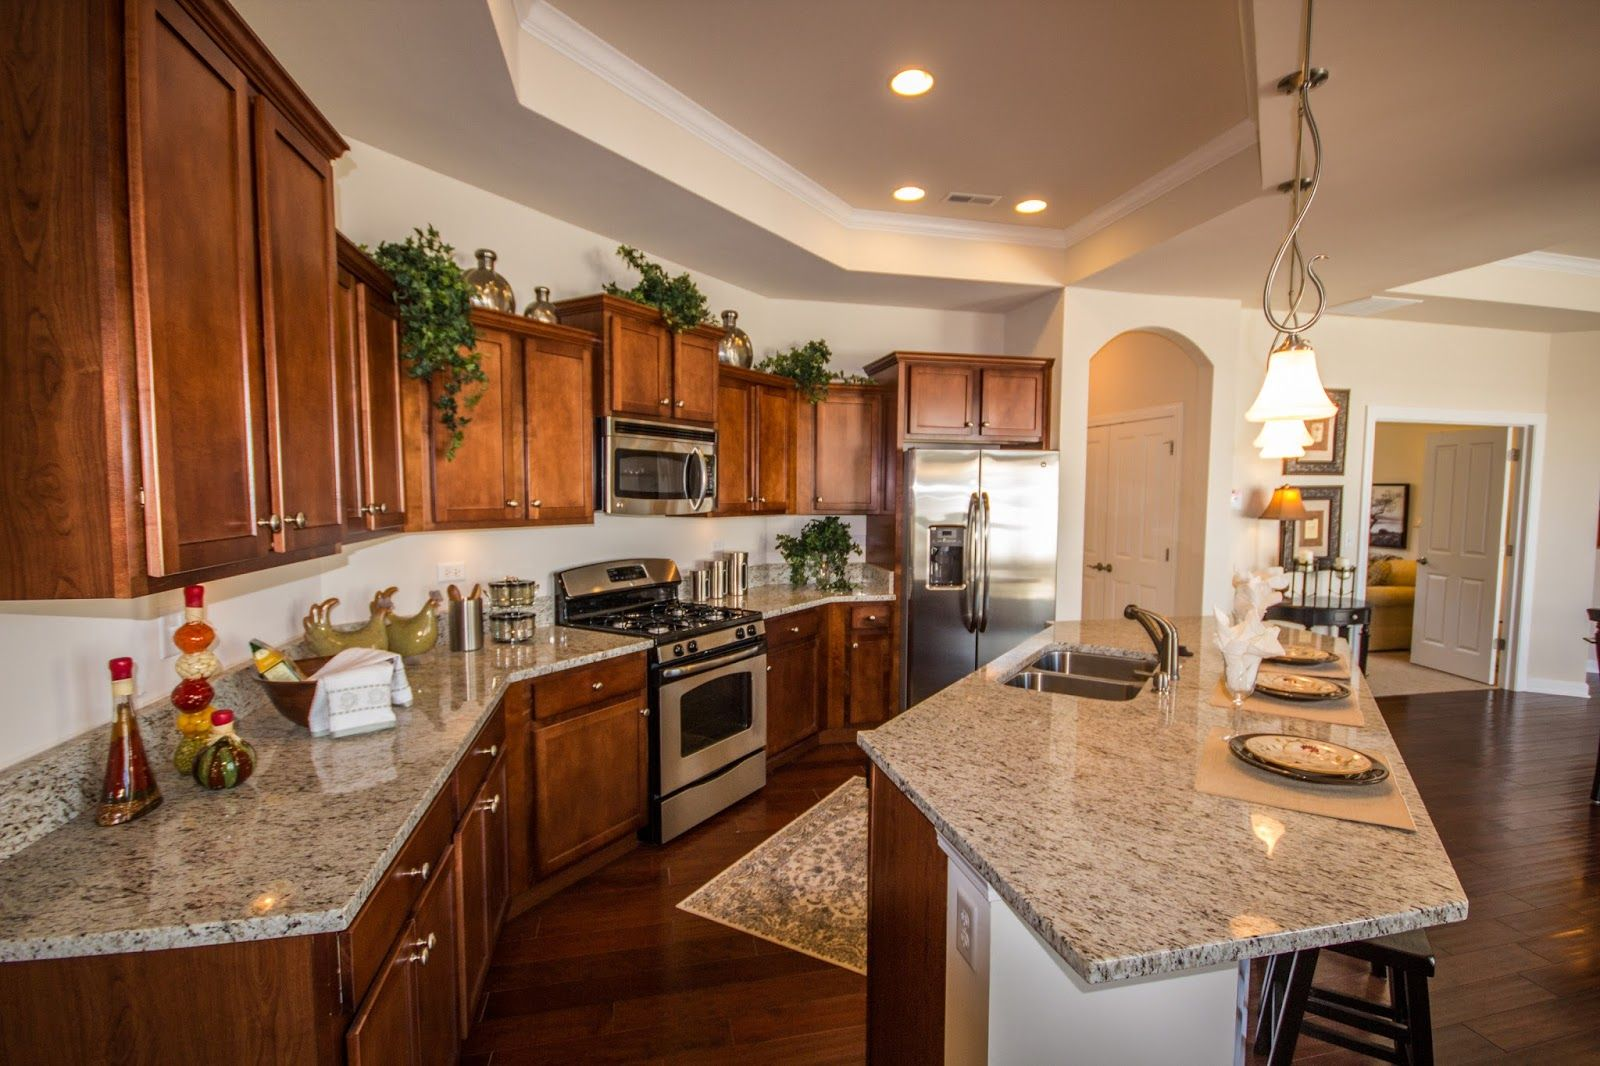 Kitchen Design In A Maintenance Free Ranch Home At Villas At Fox Run Http Homechanneltv Blog Cottage Style Kitchen Beautiful Kitchens Basement Paint Colors